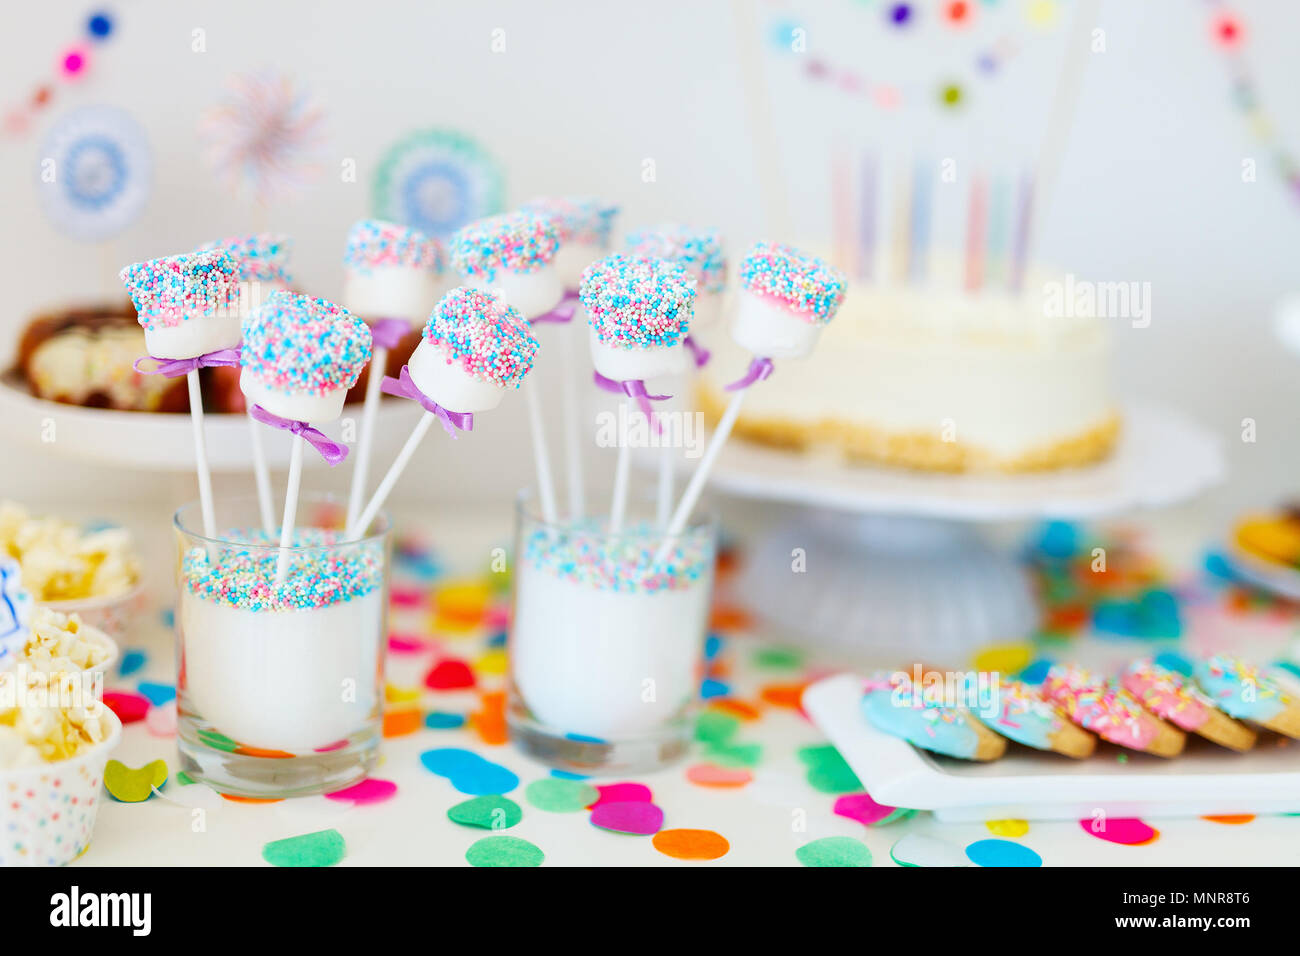 Cake, candies, marshmallows, cakepops, fruits and other sweets on dessert table at kids birthday party Stock Photo